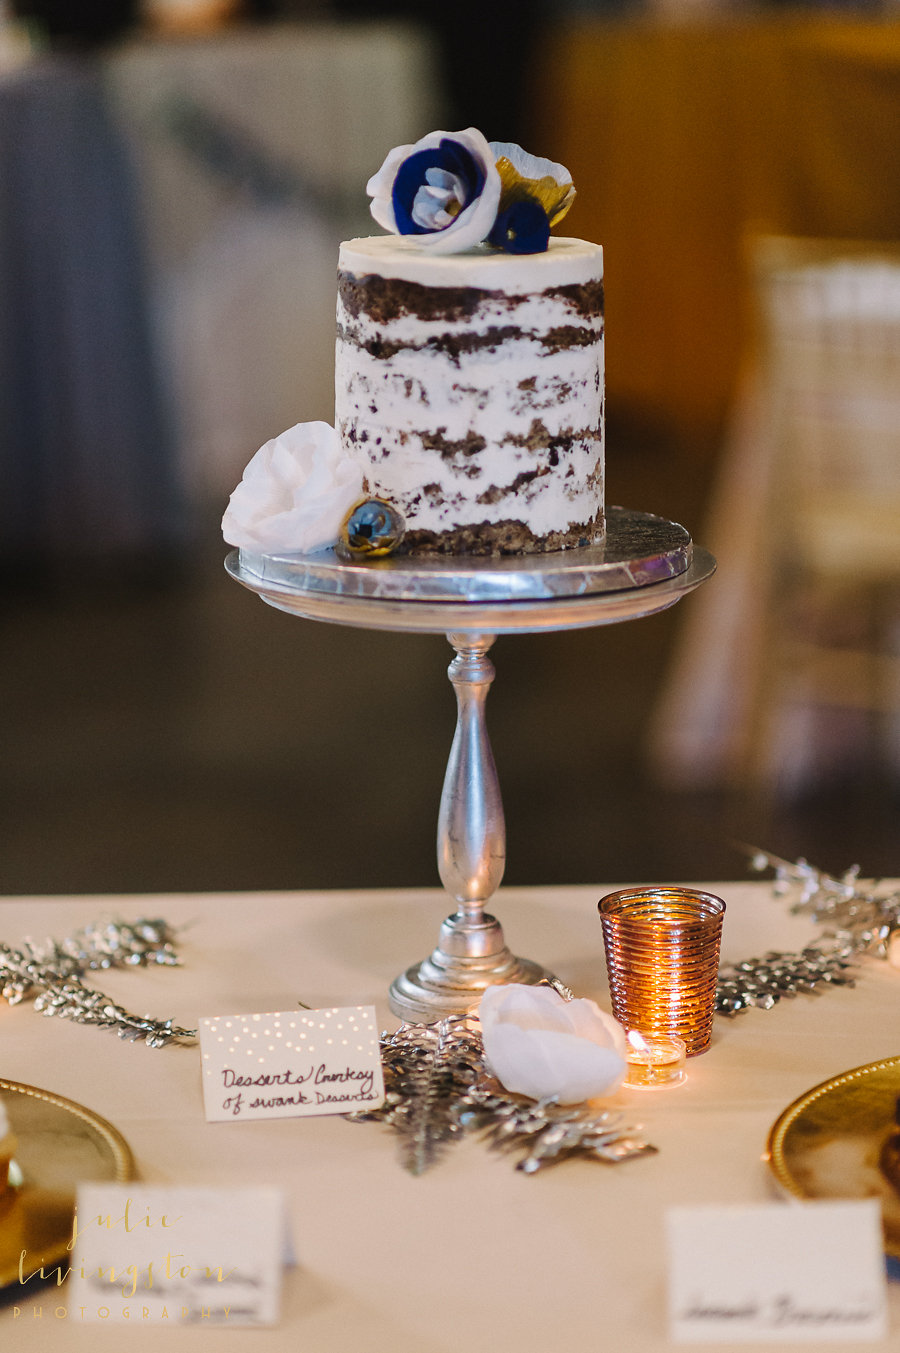 PHOTO BY JULIE LIVINGSTON PHOTOGRAPHY, DESSERTS BY SWANK DESSERTS